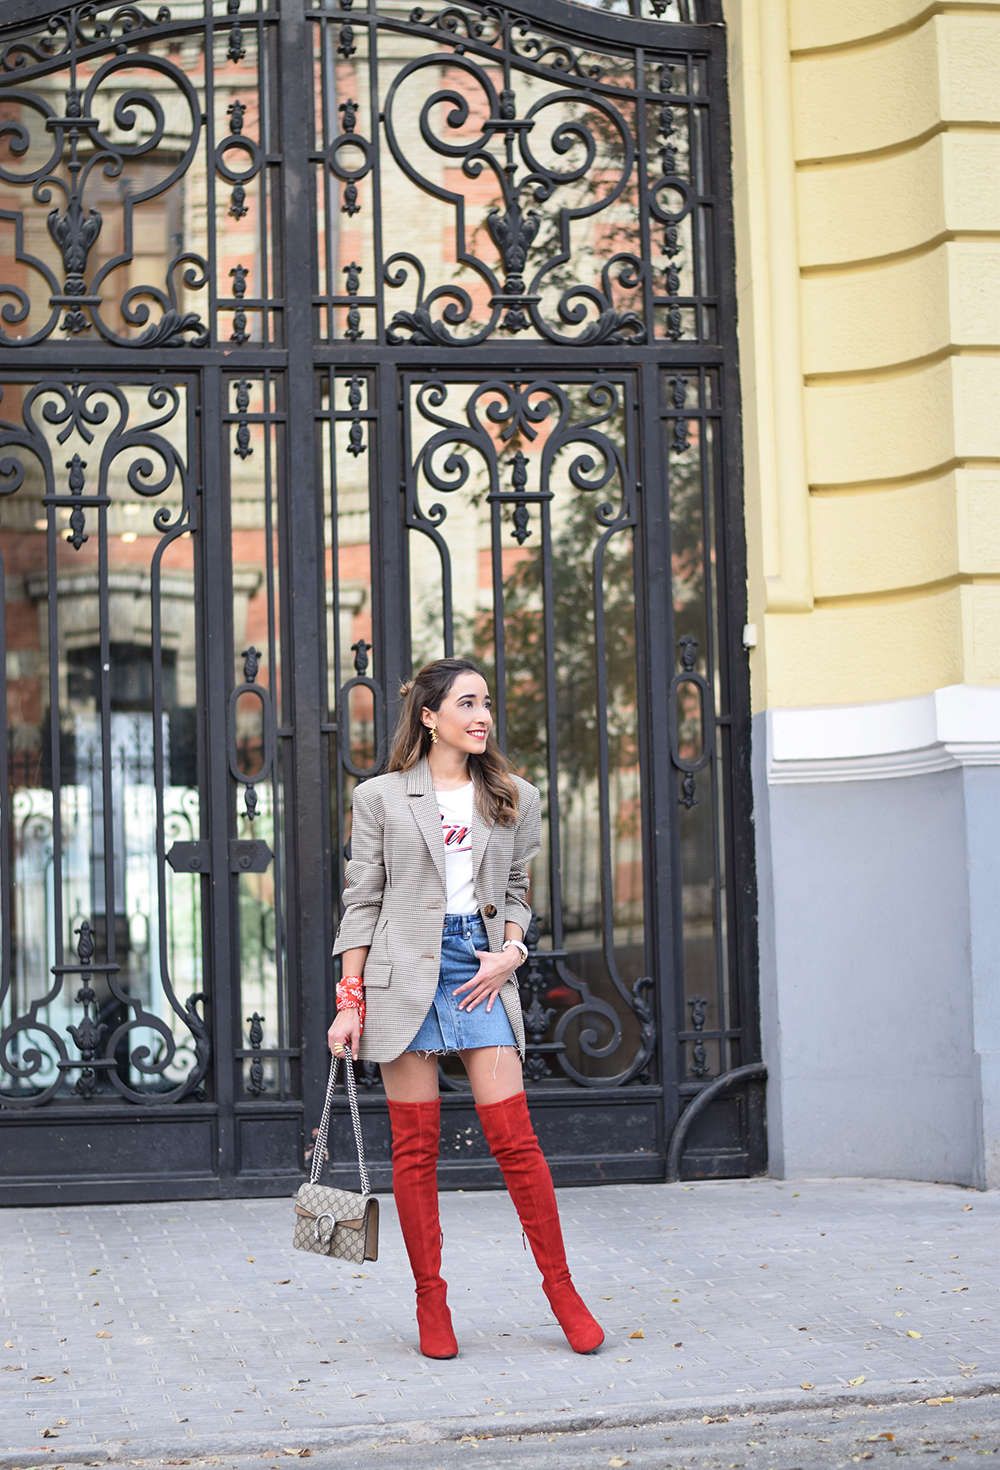 Houndstooth blazer denim skirt gucci bag red over the knee boots autumn outfit style fashion06